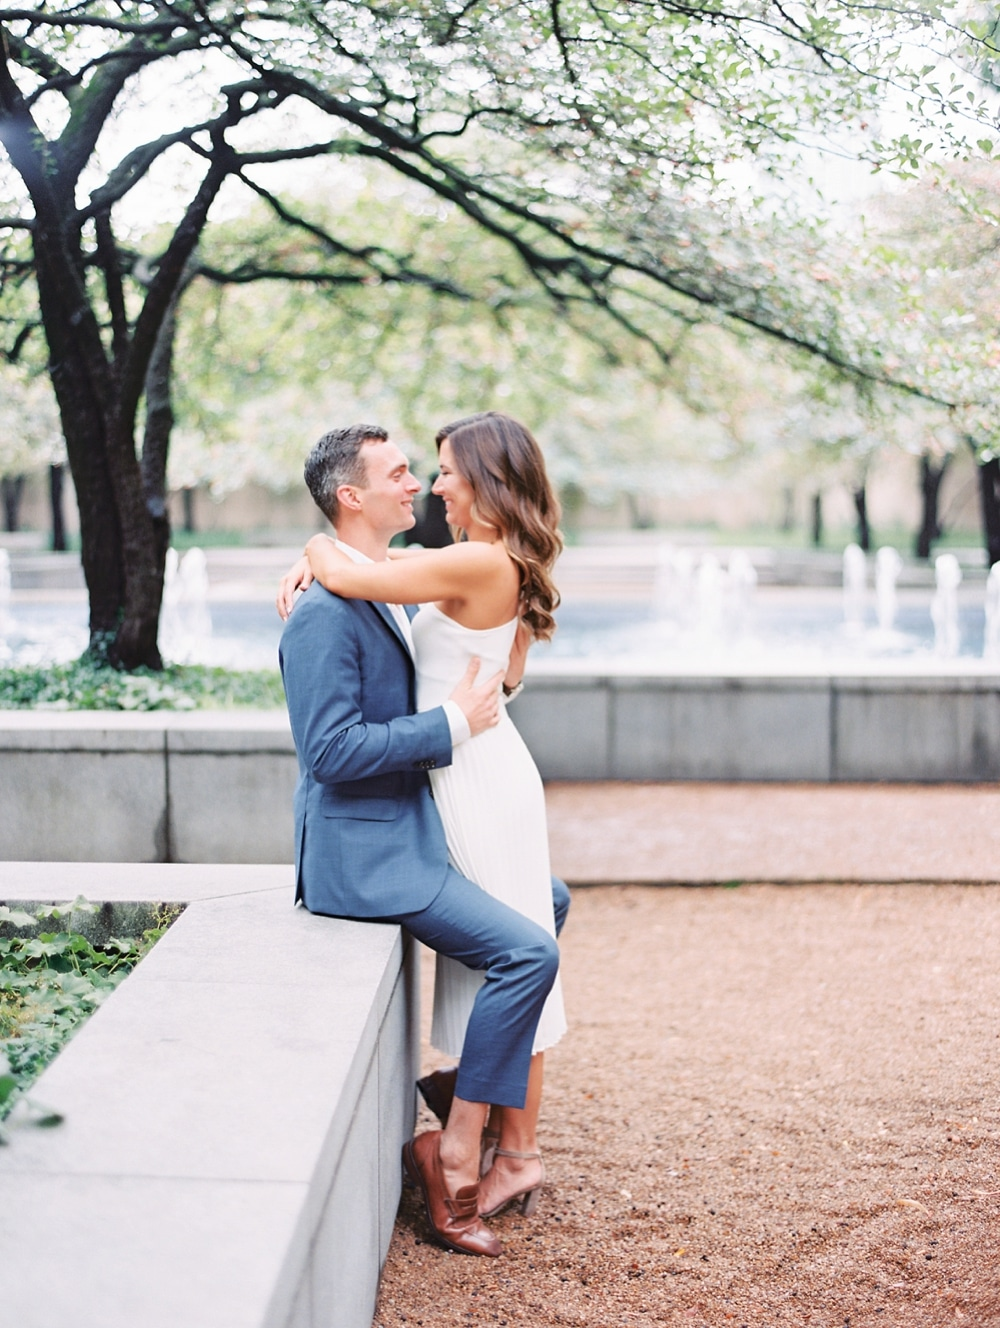 Kristin-La-Voie-Photography-chicago-art-institute-engagement-wedding-photos-60